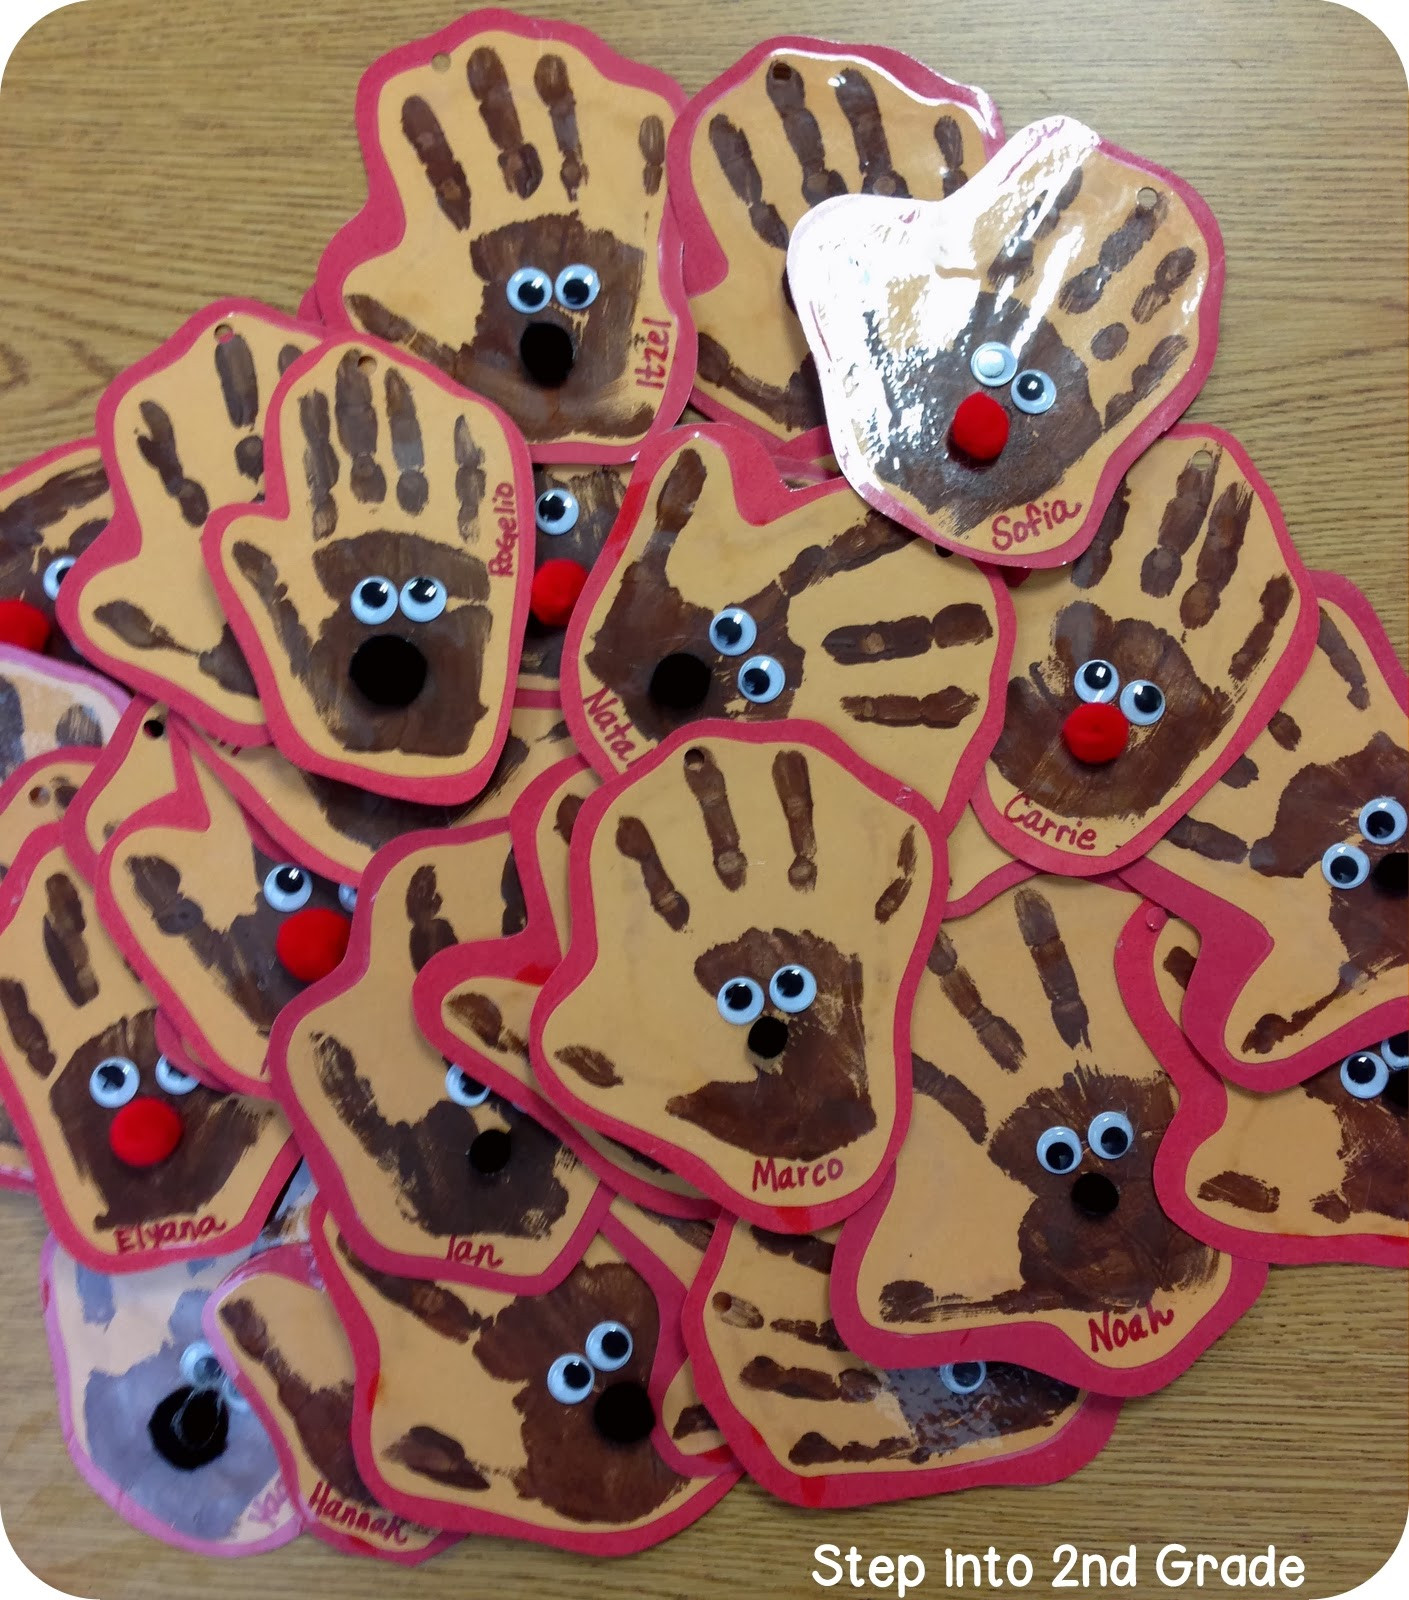 2Nd Grade Christmas Party Ideas  Step into 2nd Grade with Mrs Lemons A Whole Bunch of